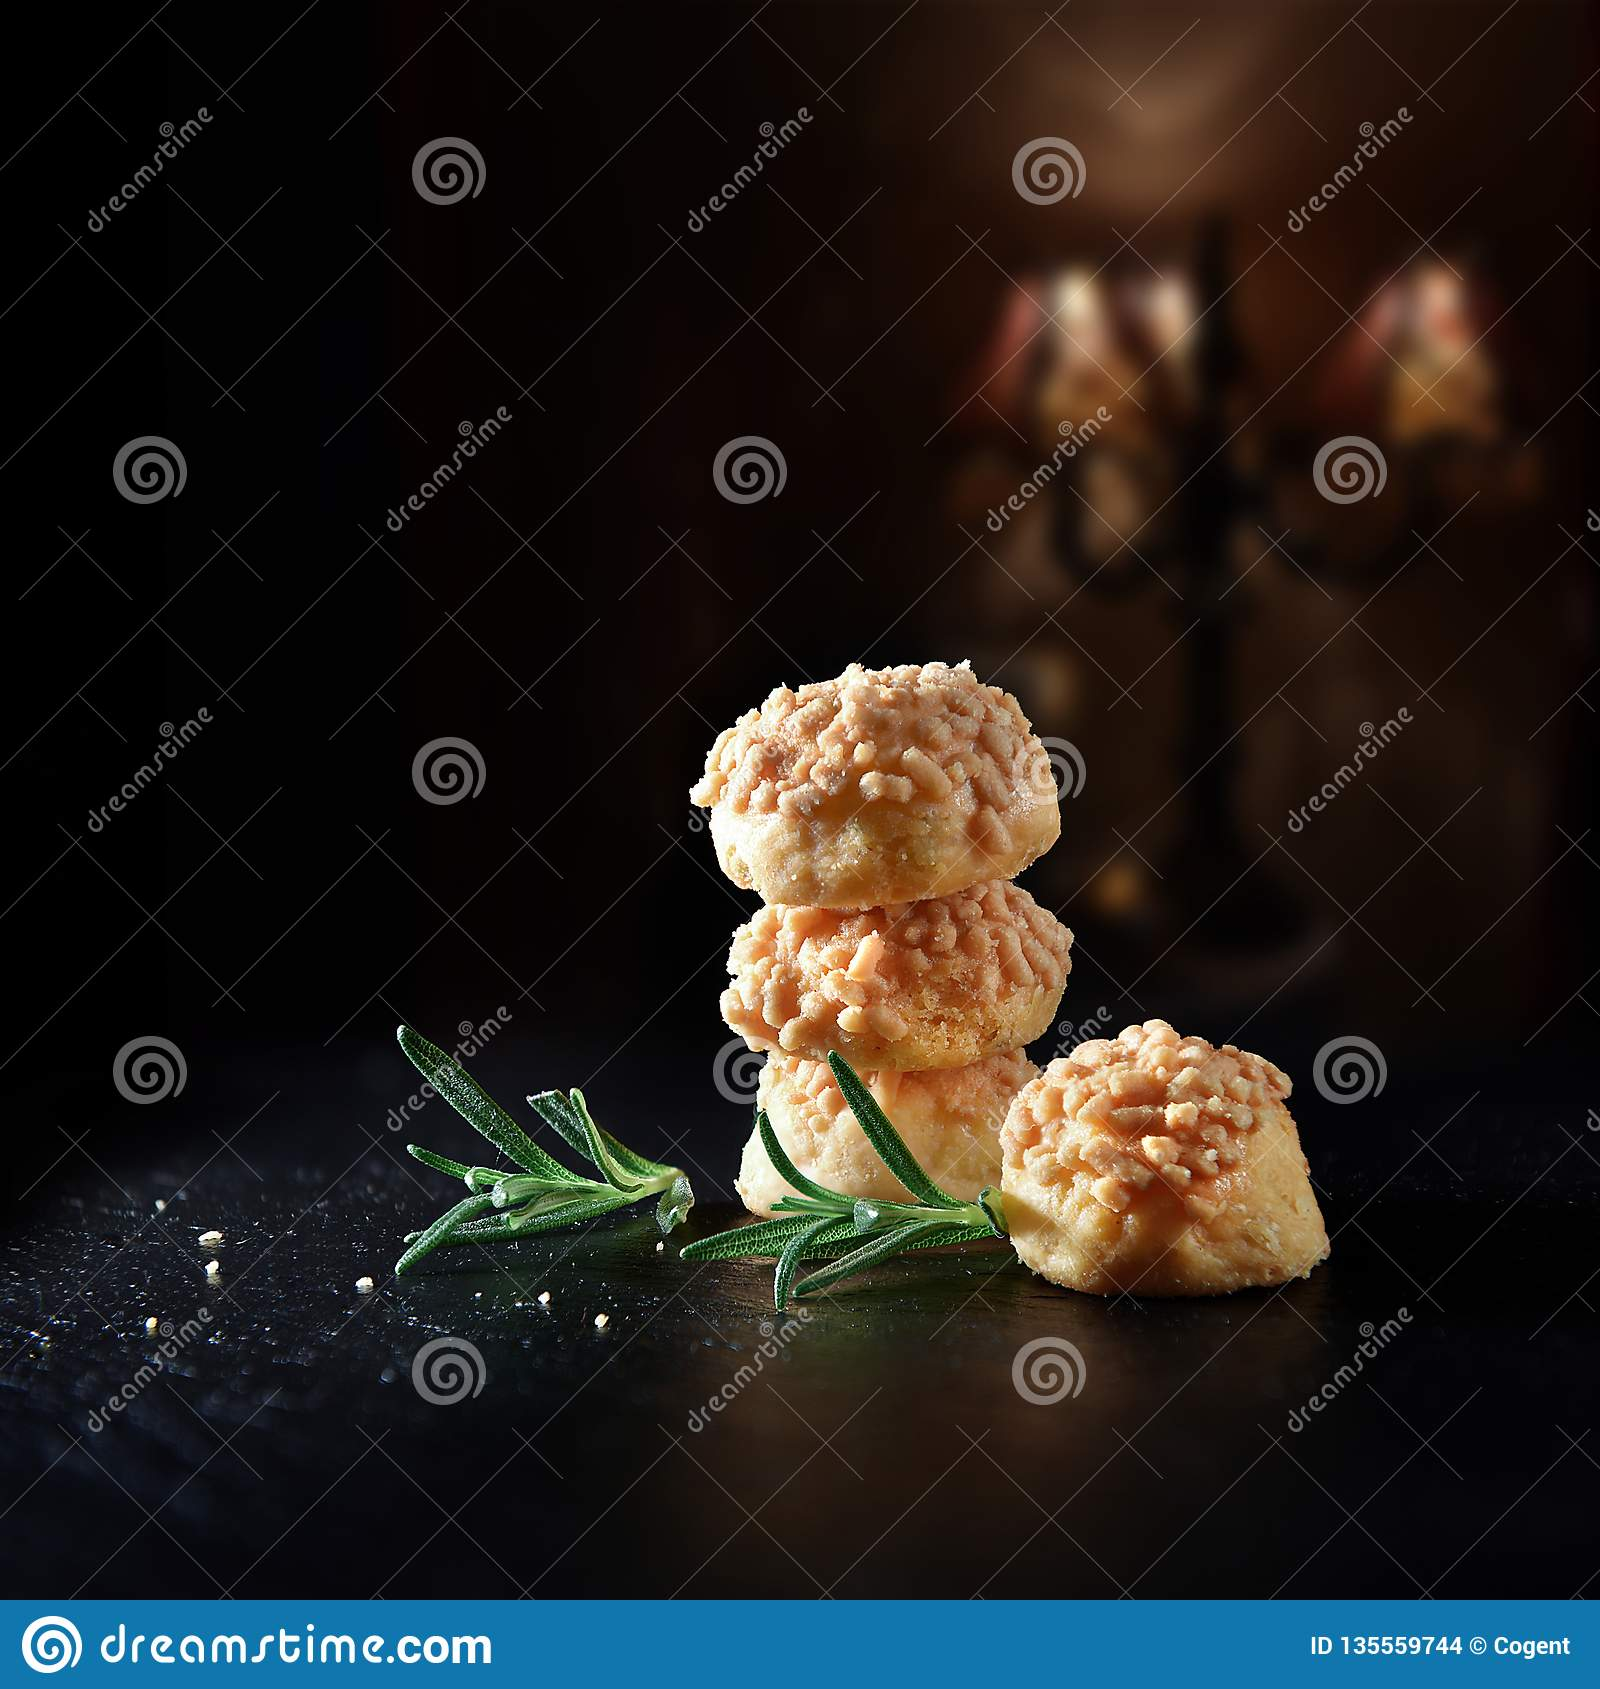 Goats Cheese And Rosemary Nibbles Stock Photo - Image of delicious